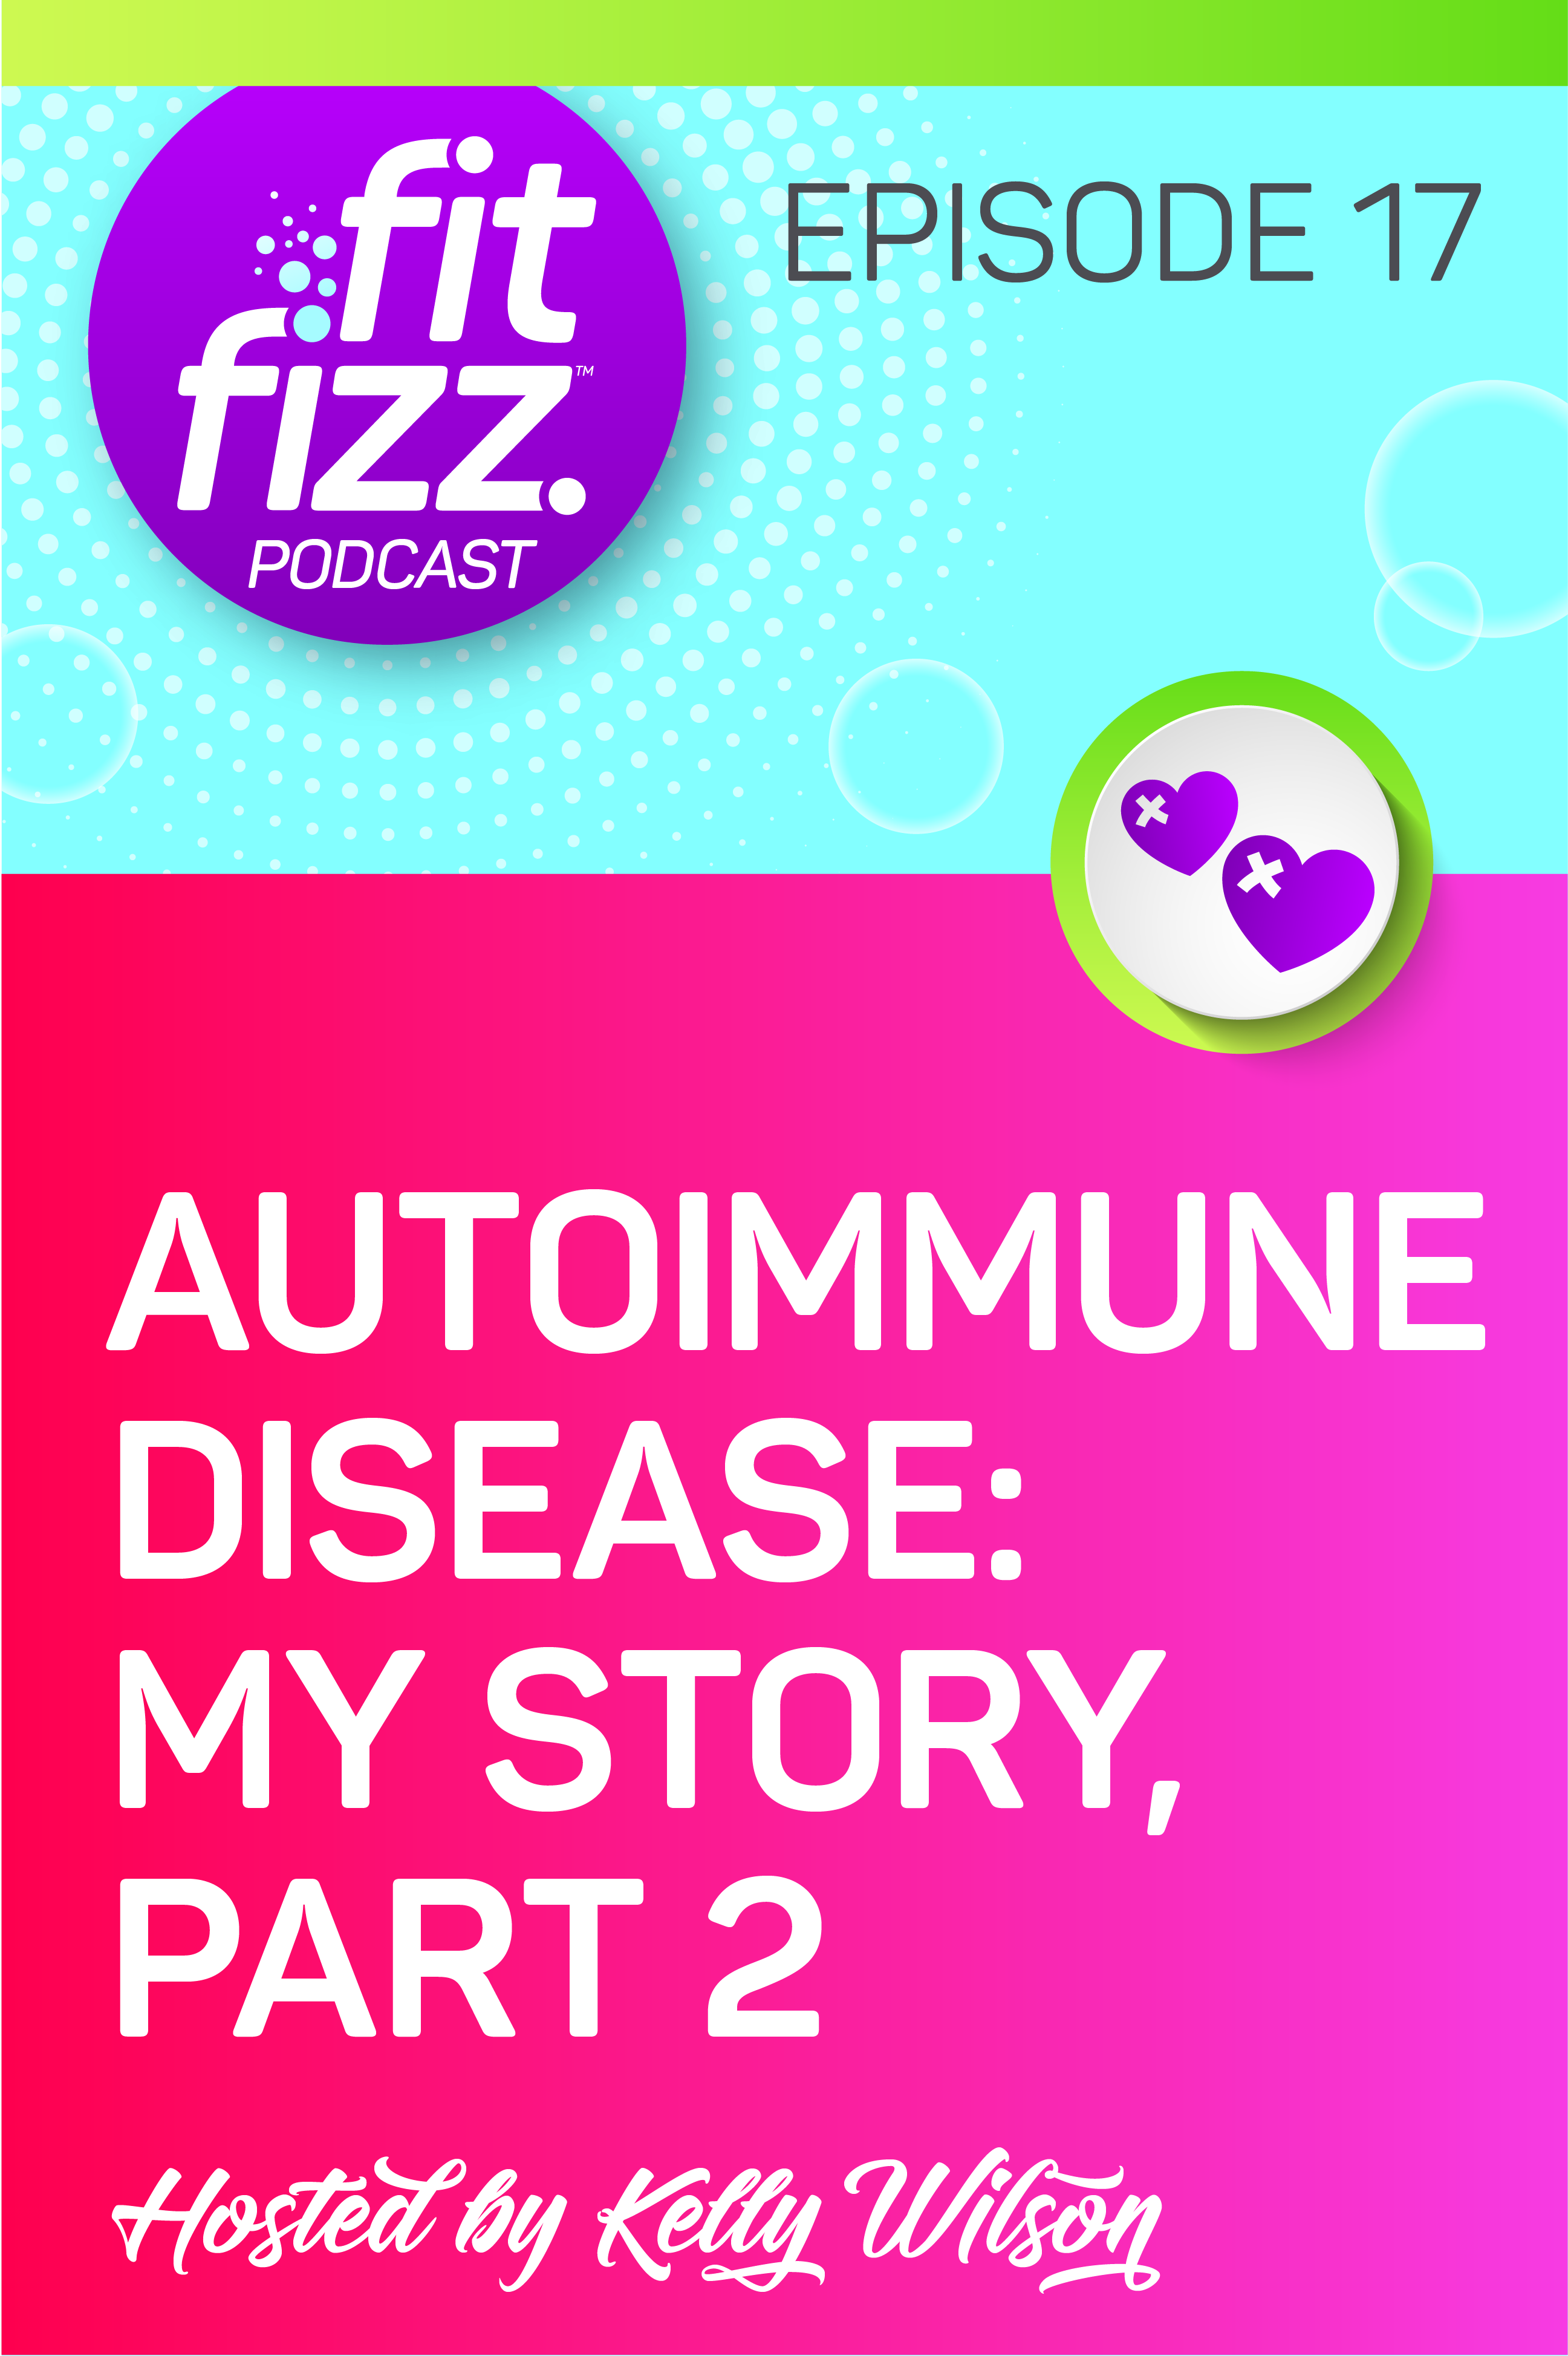 FitFizz Podcast Ep. 17: Autoimmune Disease, My Story, Part 2: Today is the continuation of my autoimmune disease story. I gave you part one in Episode 7. Today I\'m explaining what it was like when I was at the worst of it. There was a long list of food sensitivities, pain, brain fog, and a scary overall feeling of disorientation for many months.